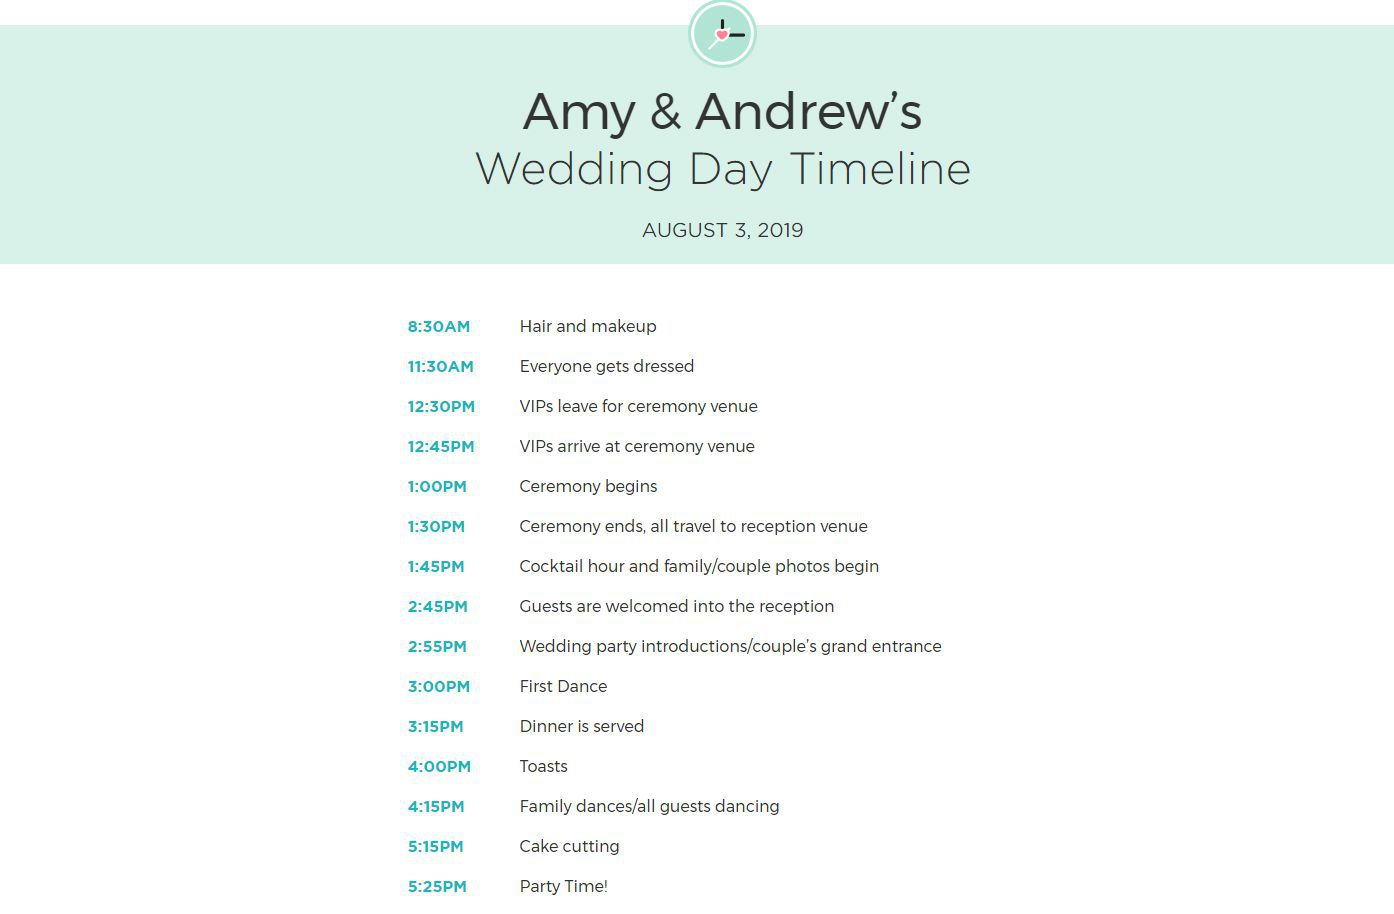 009 Formidable Wedding Day Itinerary Template Design  Reception Dj Indian Timeline For Bridal PartyFull